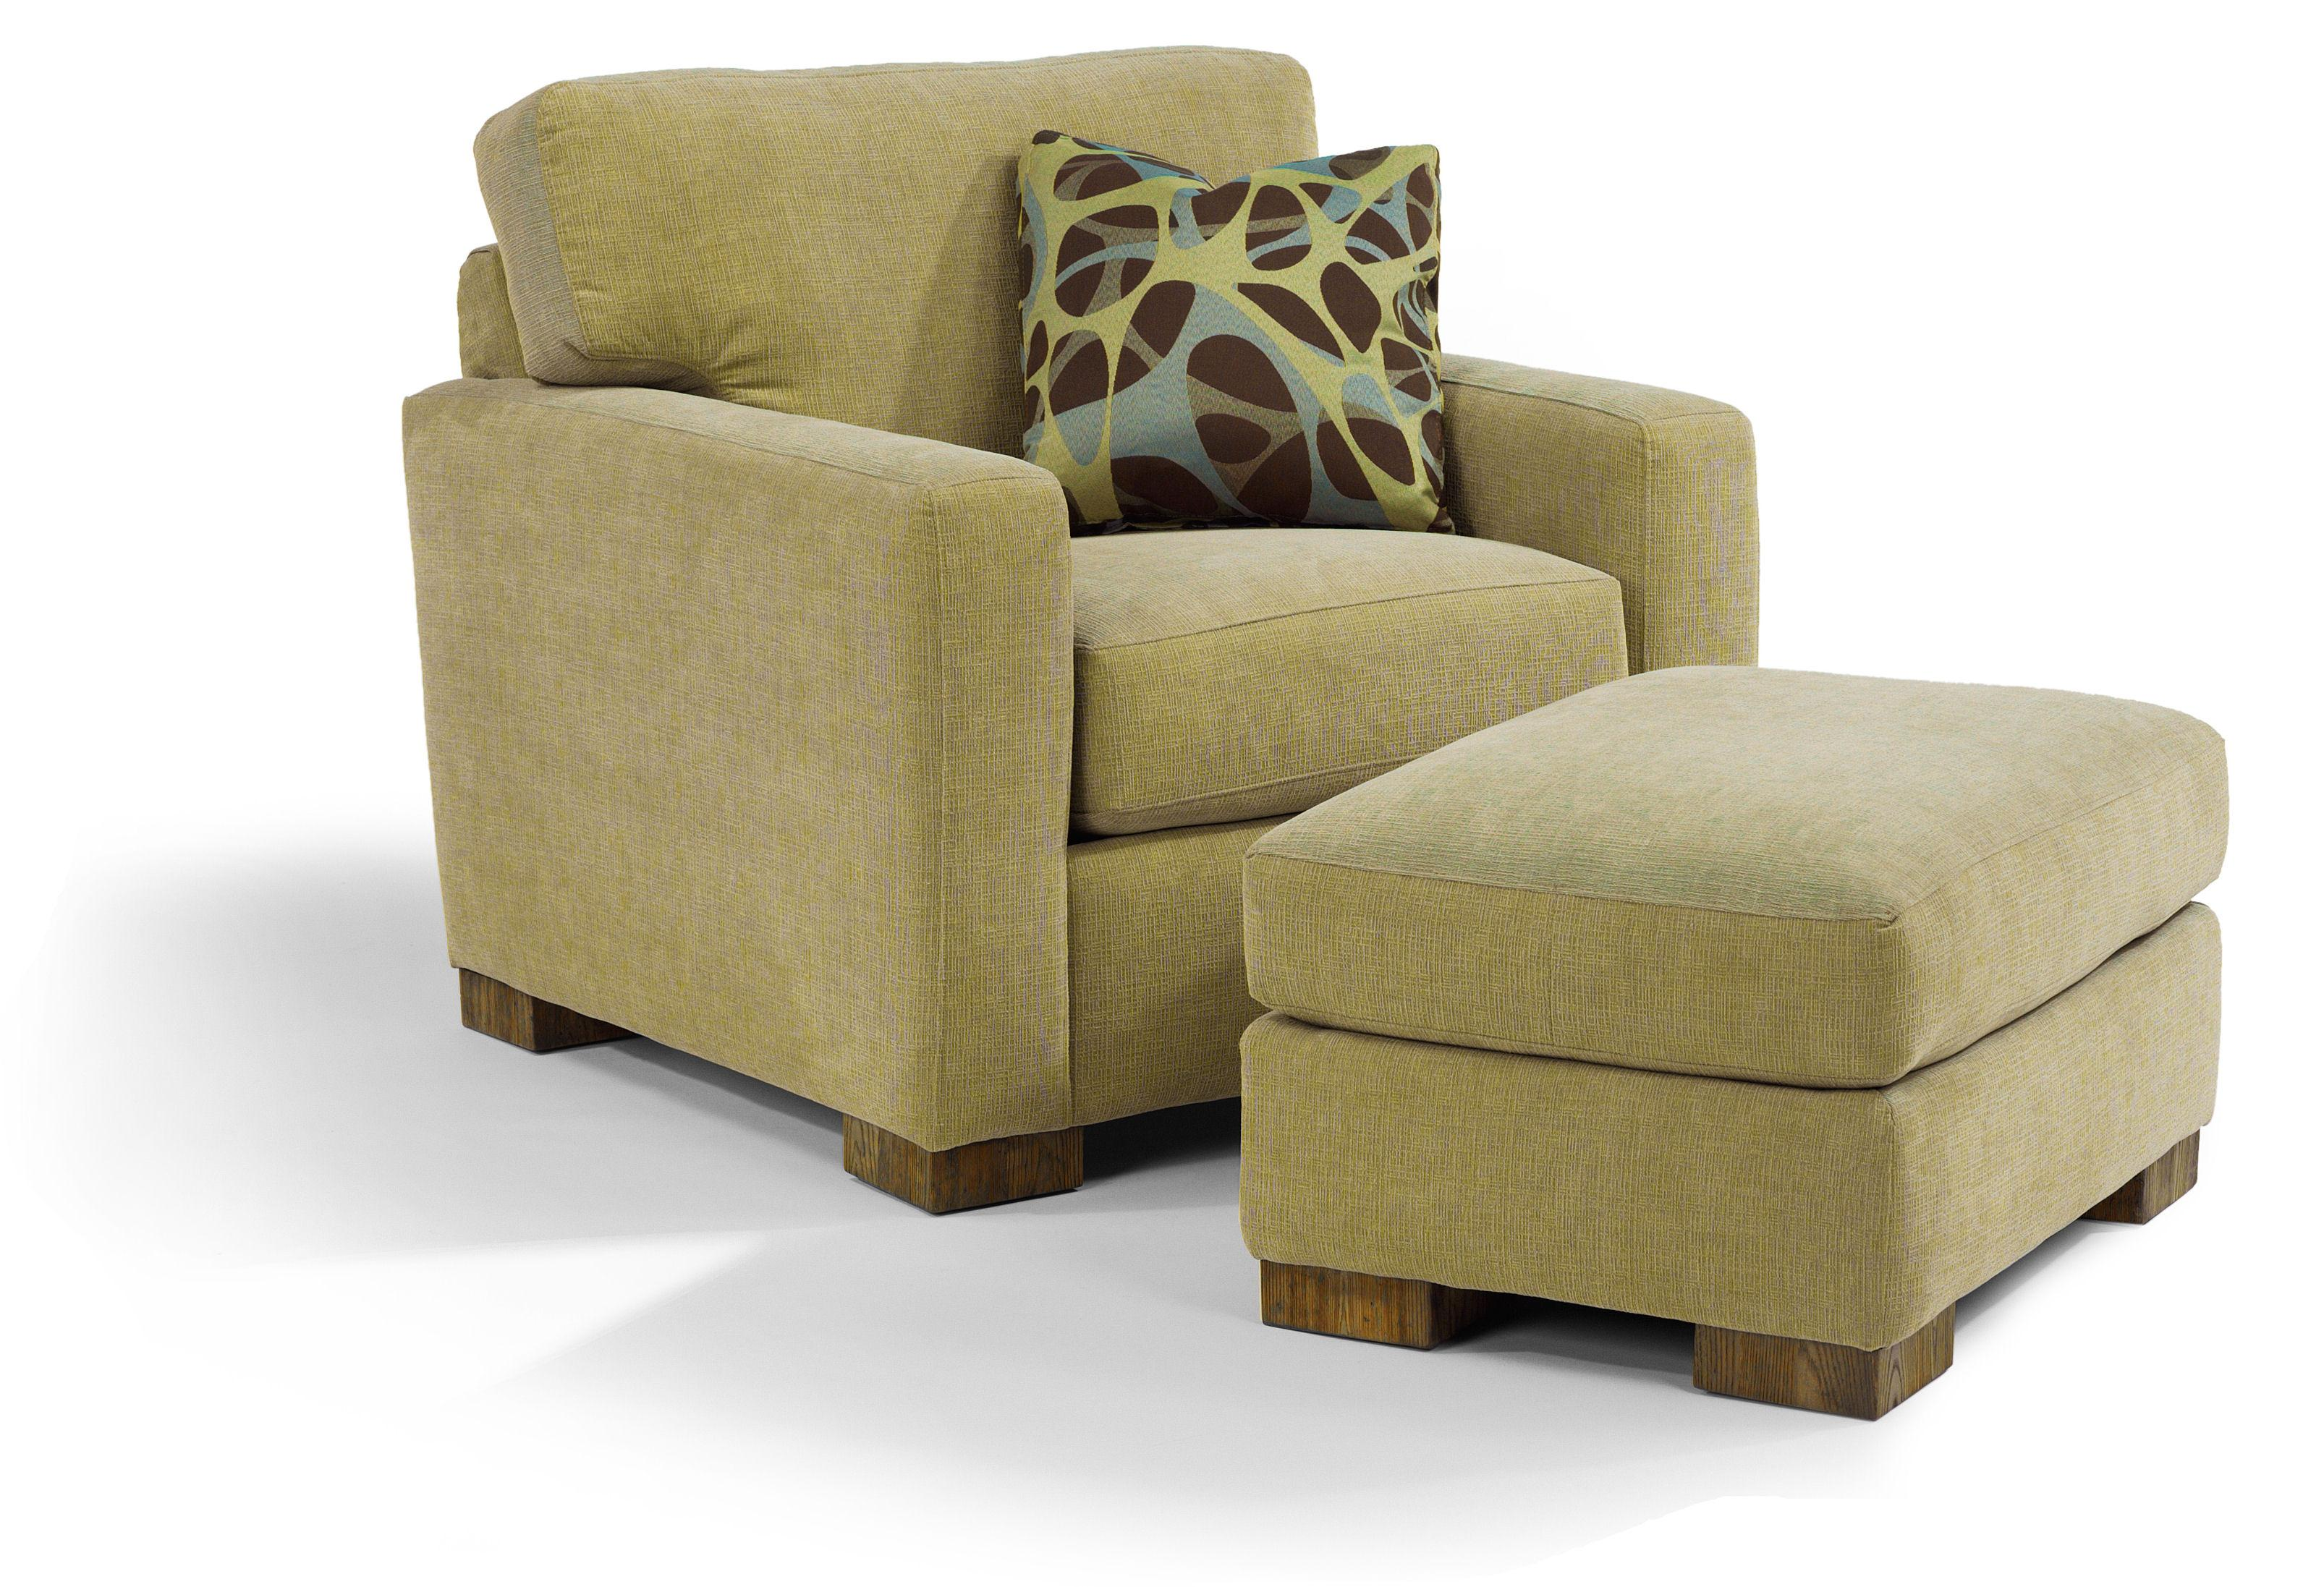 flexsteel chair prices anime bean bag bryant contemporary and ottoman with